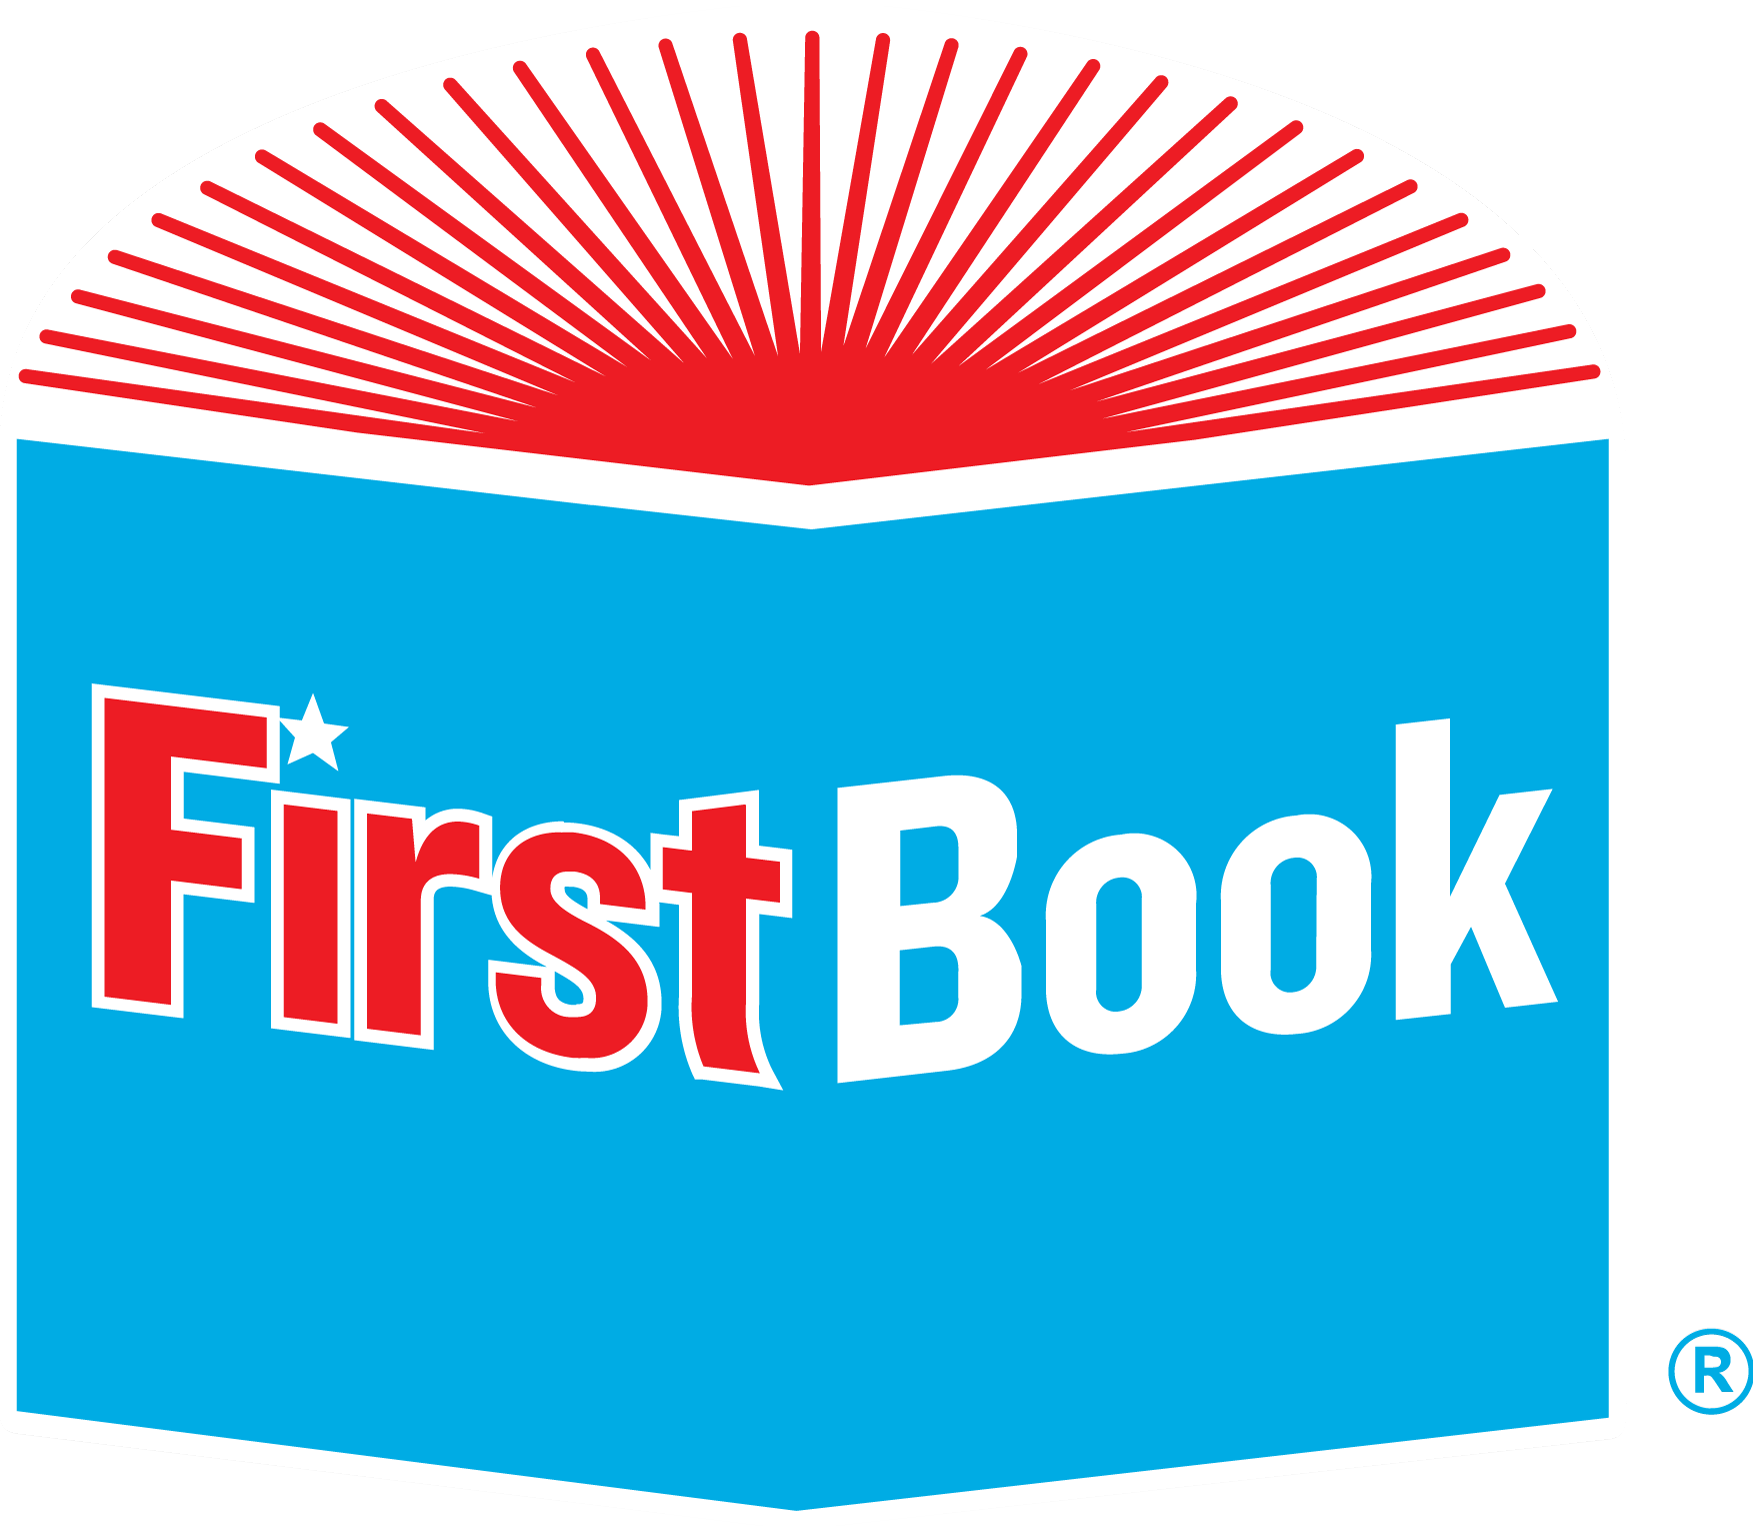 First Book Marketplace